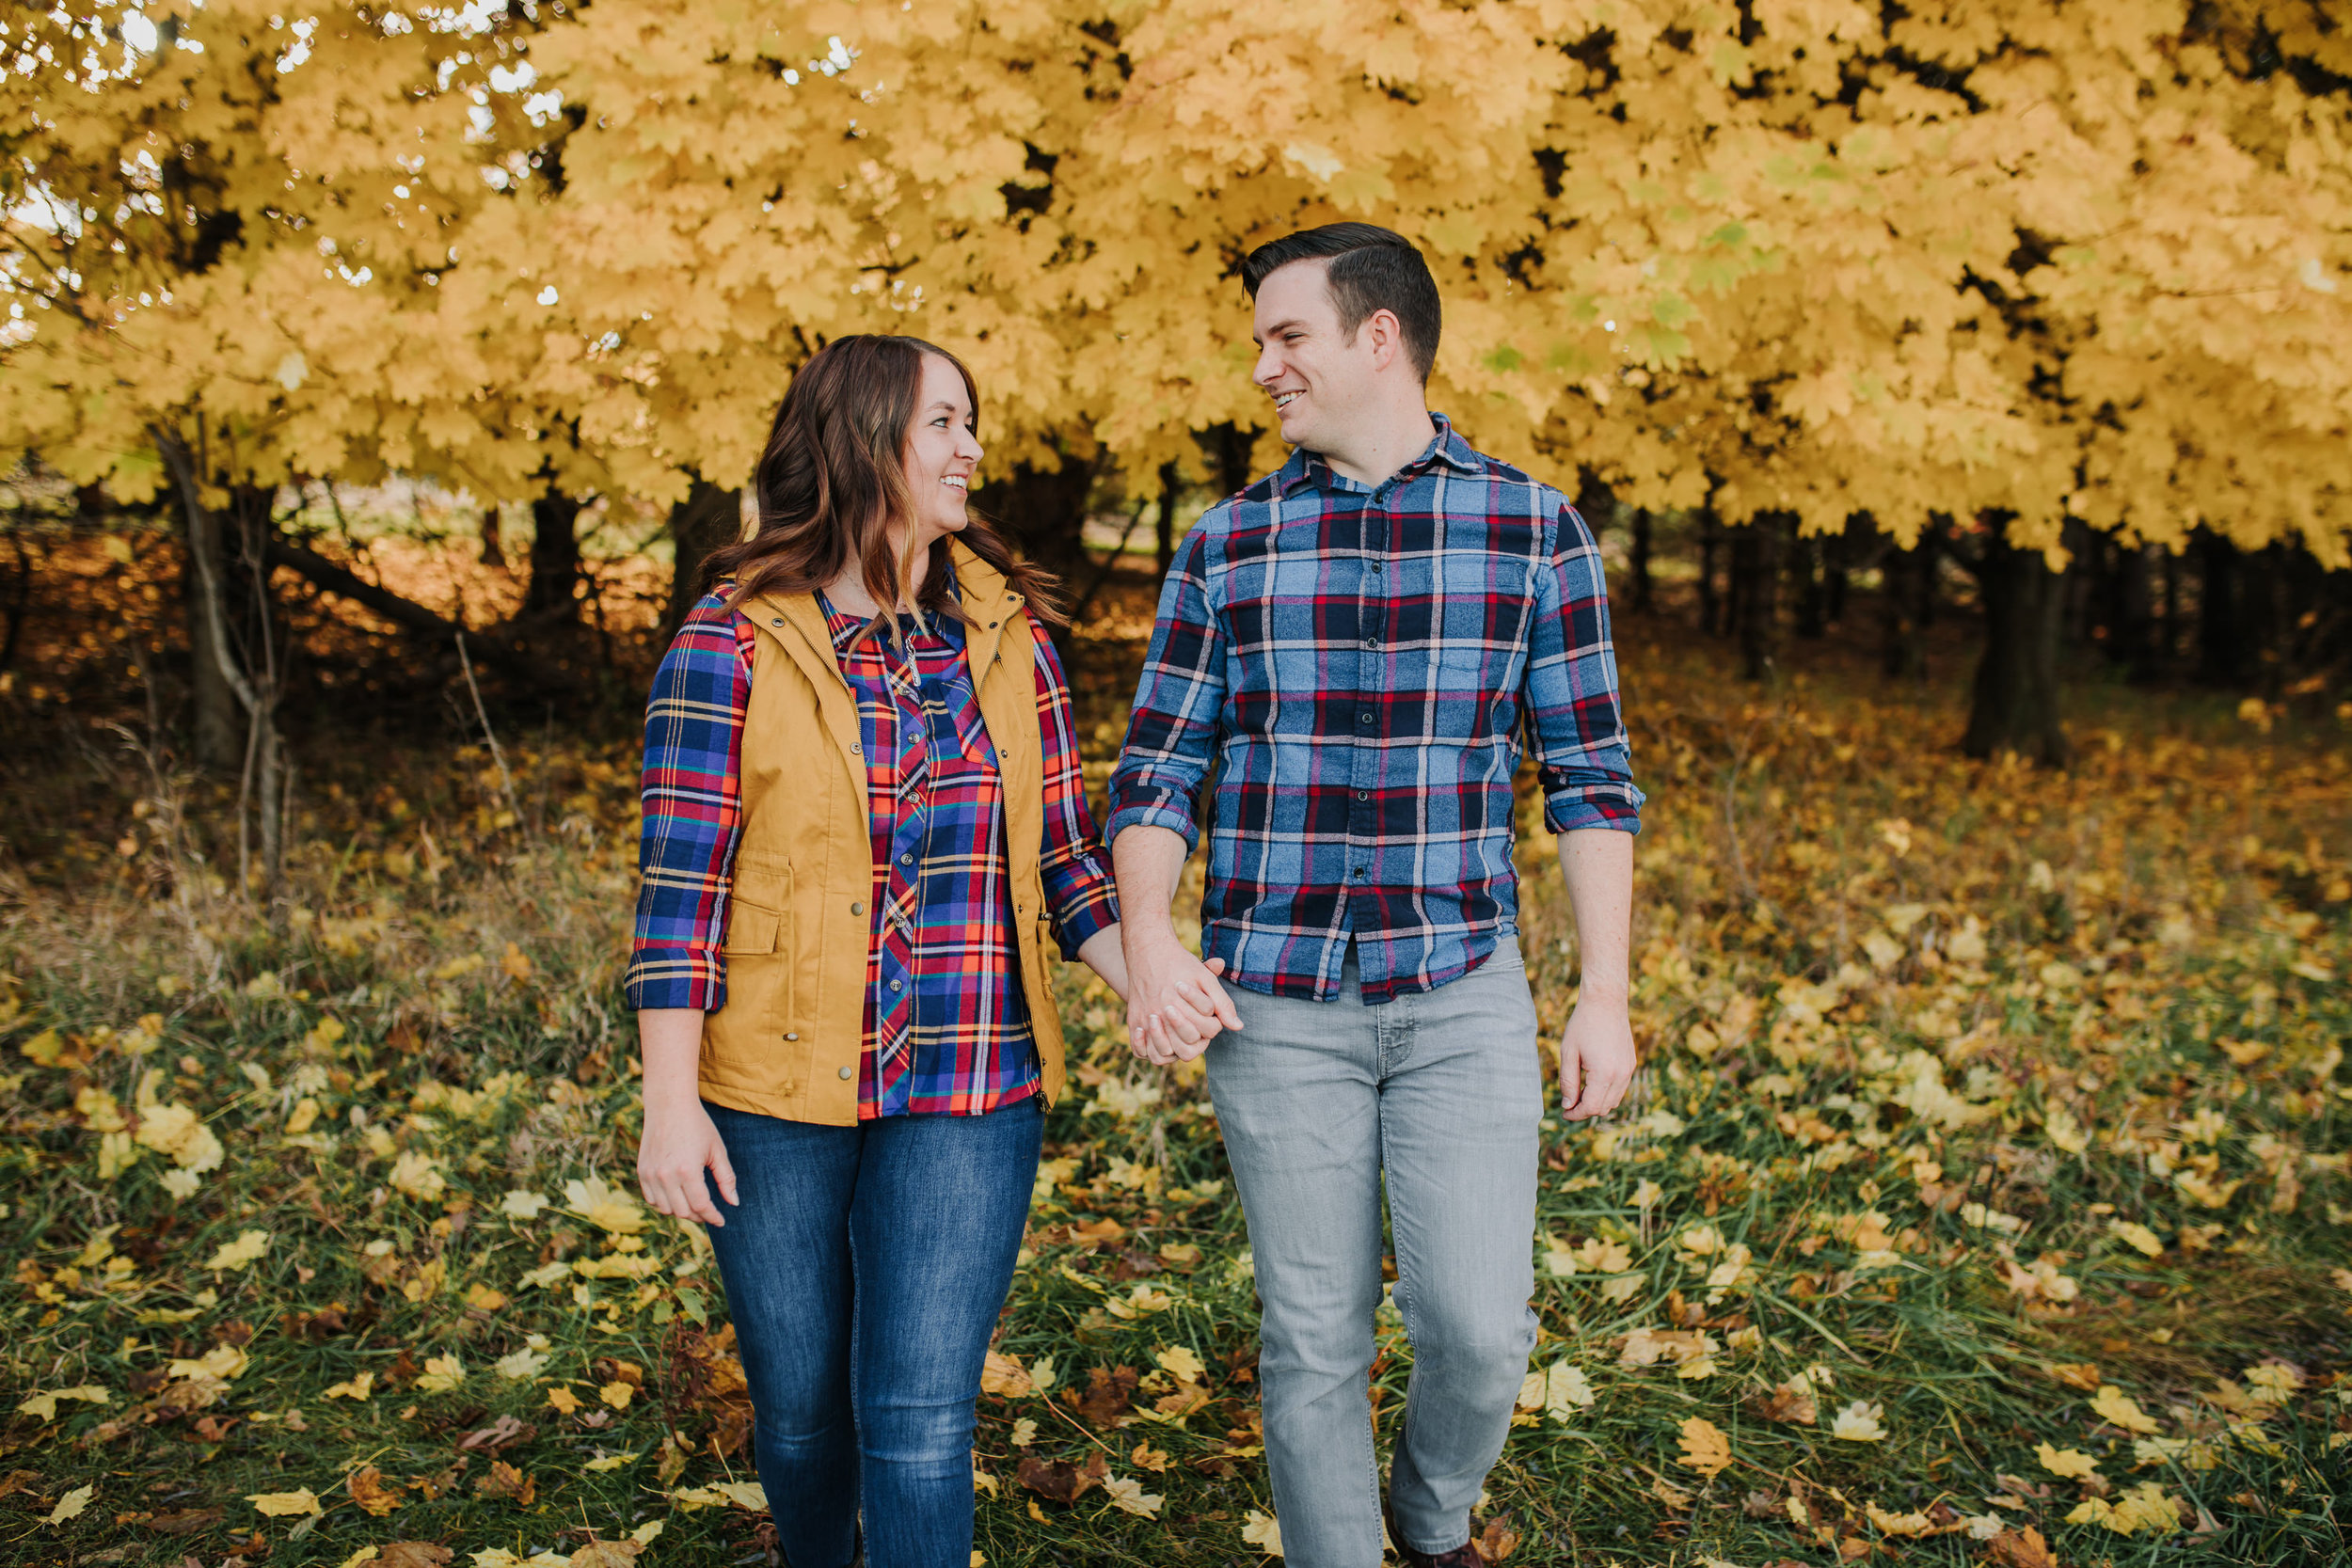 Katie & Adam - Engaged - Nathaniel Jensen Photography - Omaha Nebraska Wedding Photograper - Omaha Nebraska Engagement Session - Chalco Hills Engagement Session-8.jpg